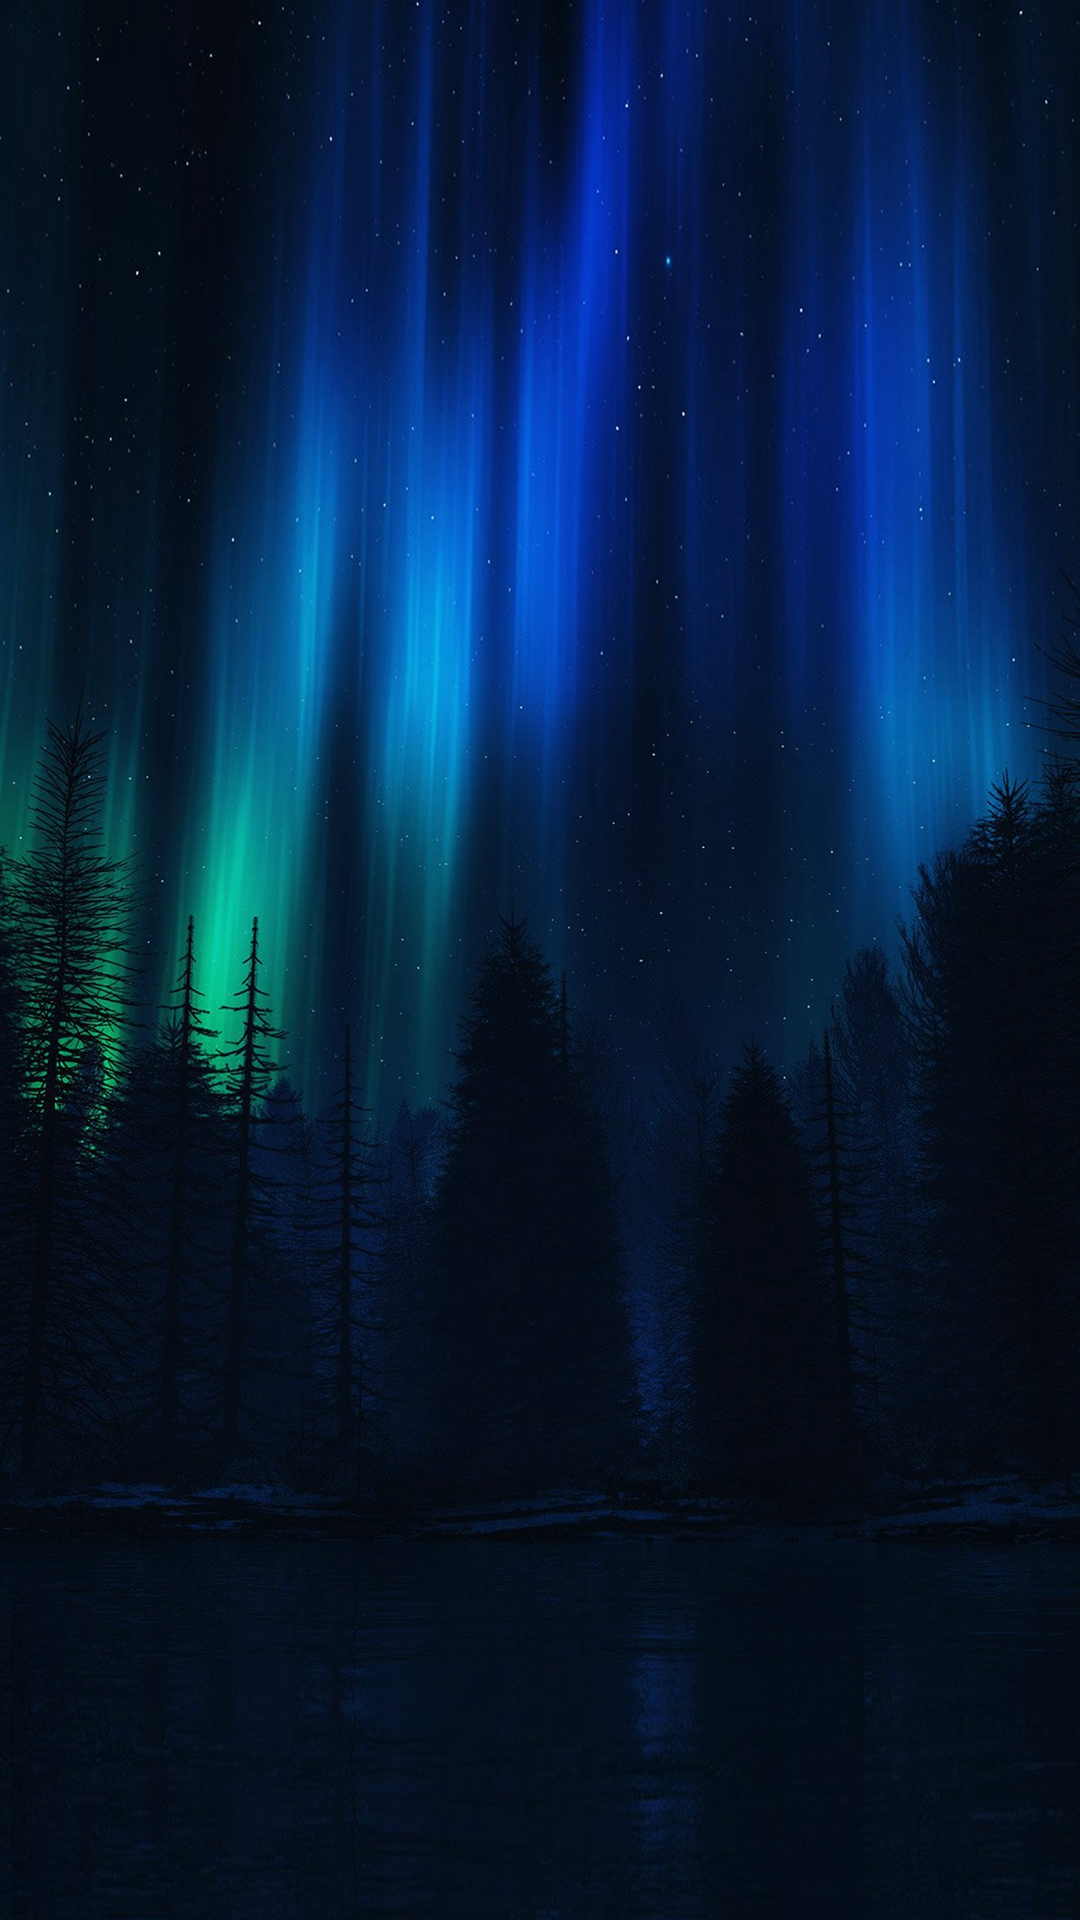 Aurora-Night-Sky-Dark-Blue-Nature-Art-iPhone-wallpaper-wp423815-1